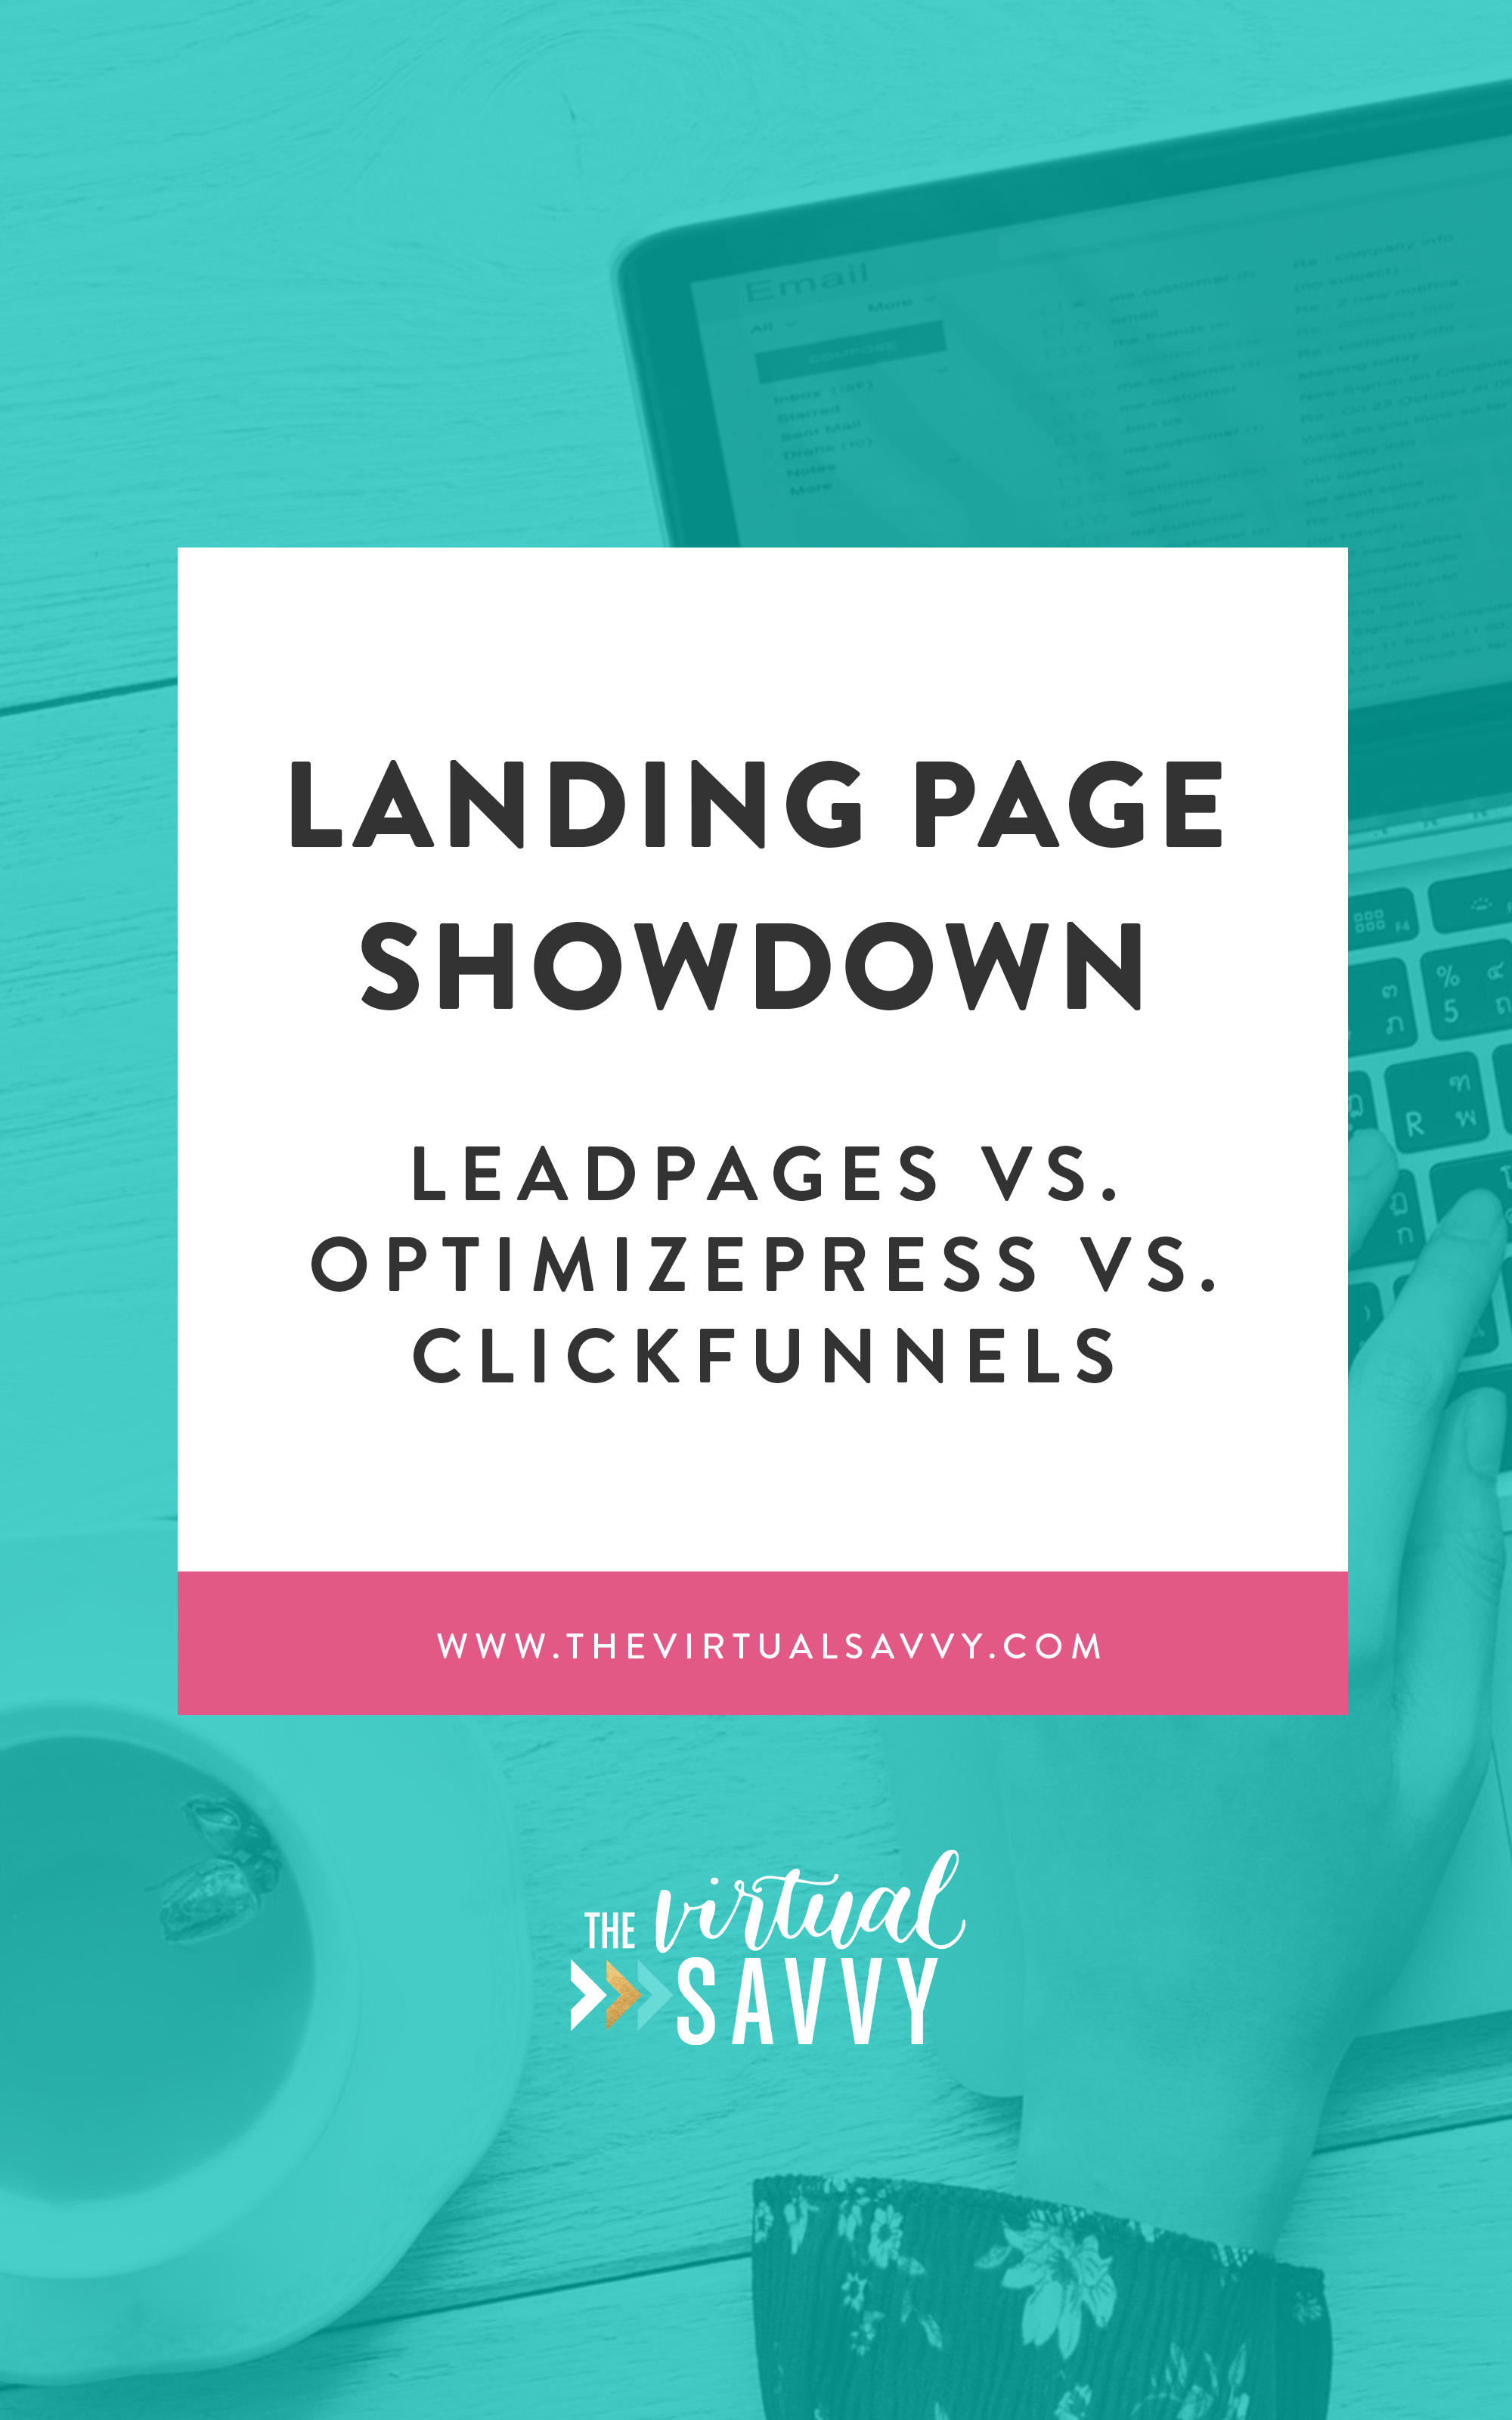 Clickfunnels Vs Leadpages 2016 Things To Know Before You Buy